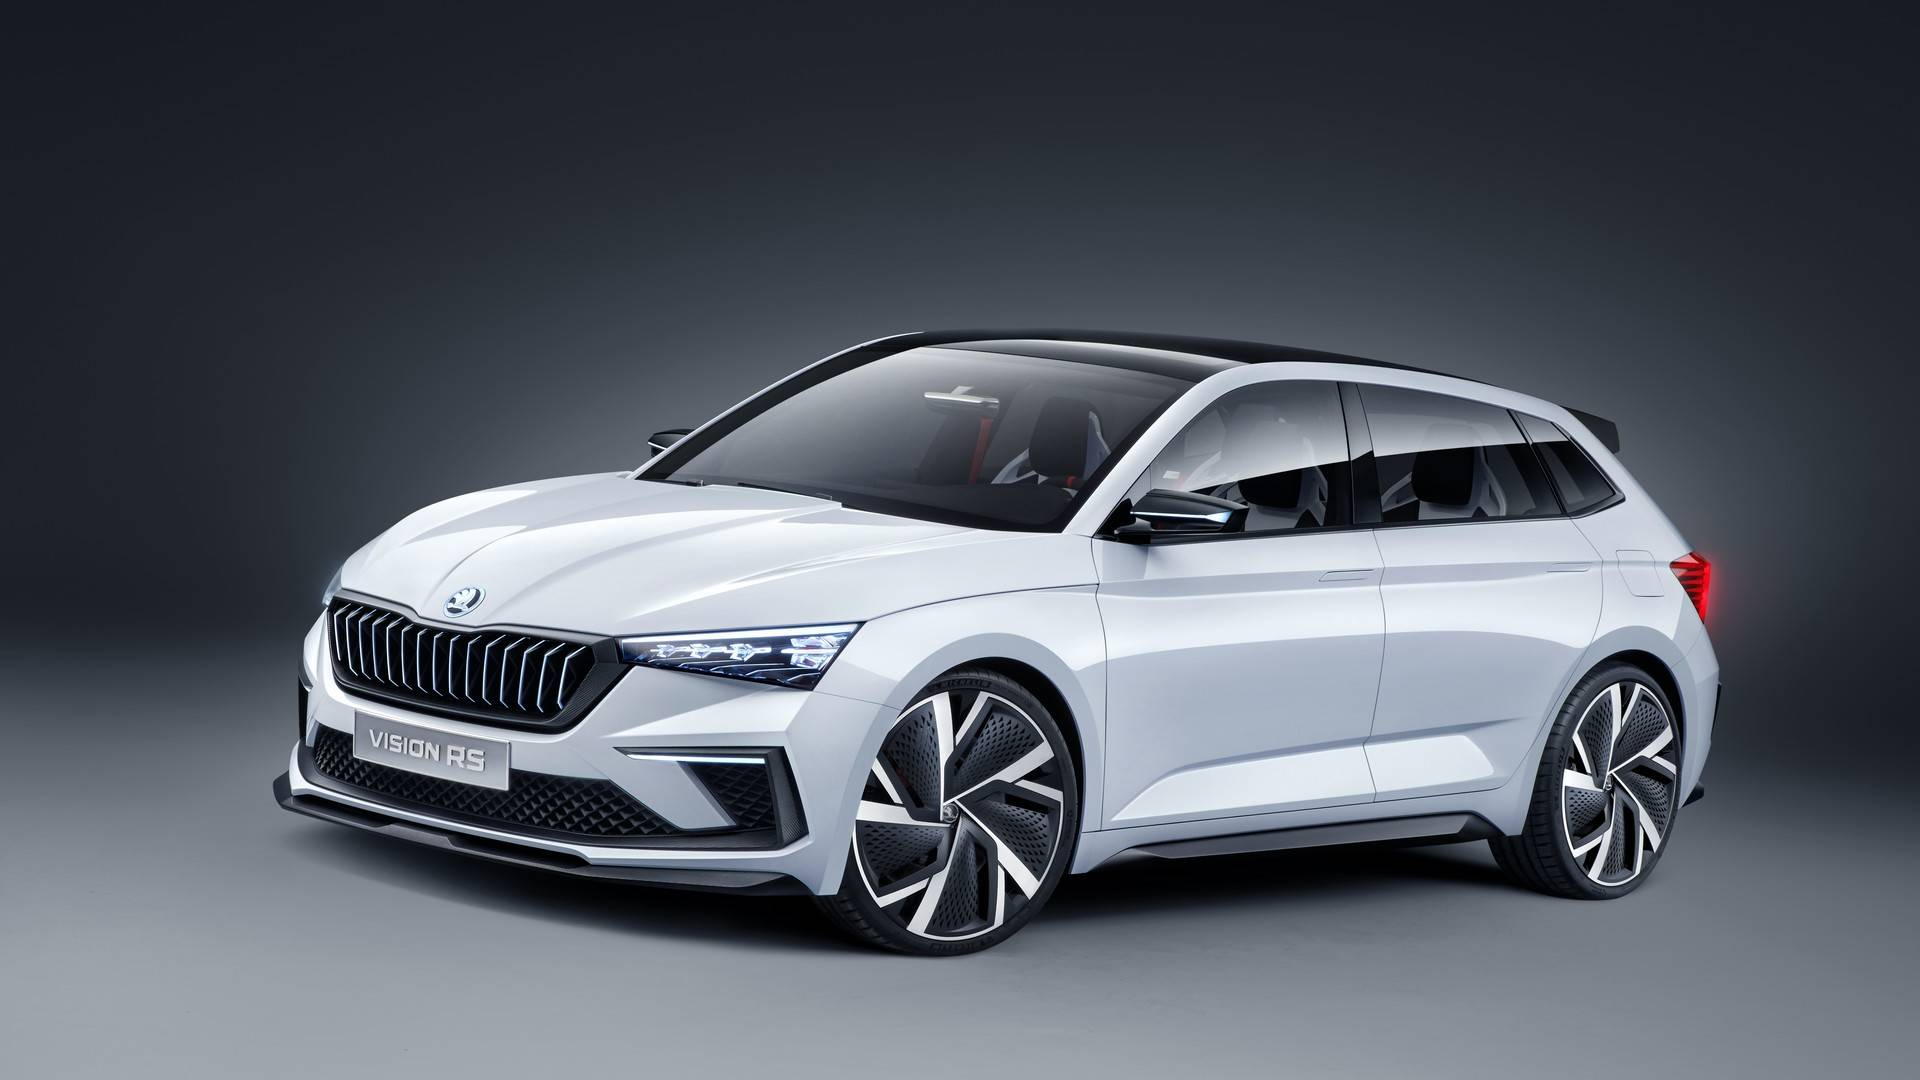 Skoda Vision RS Concept (3)